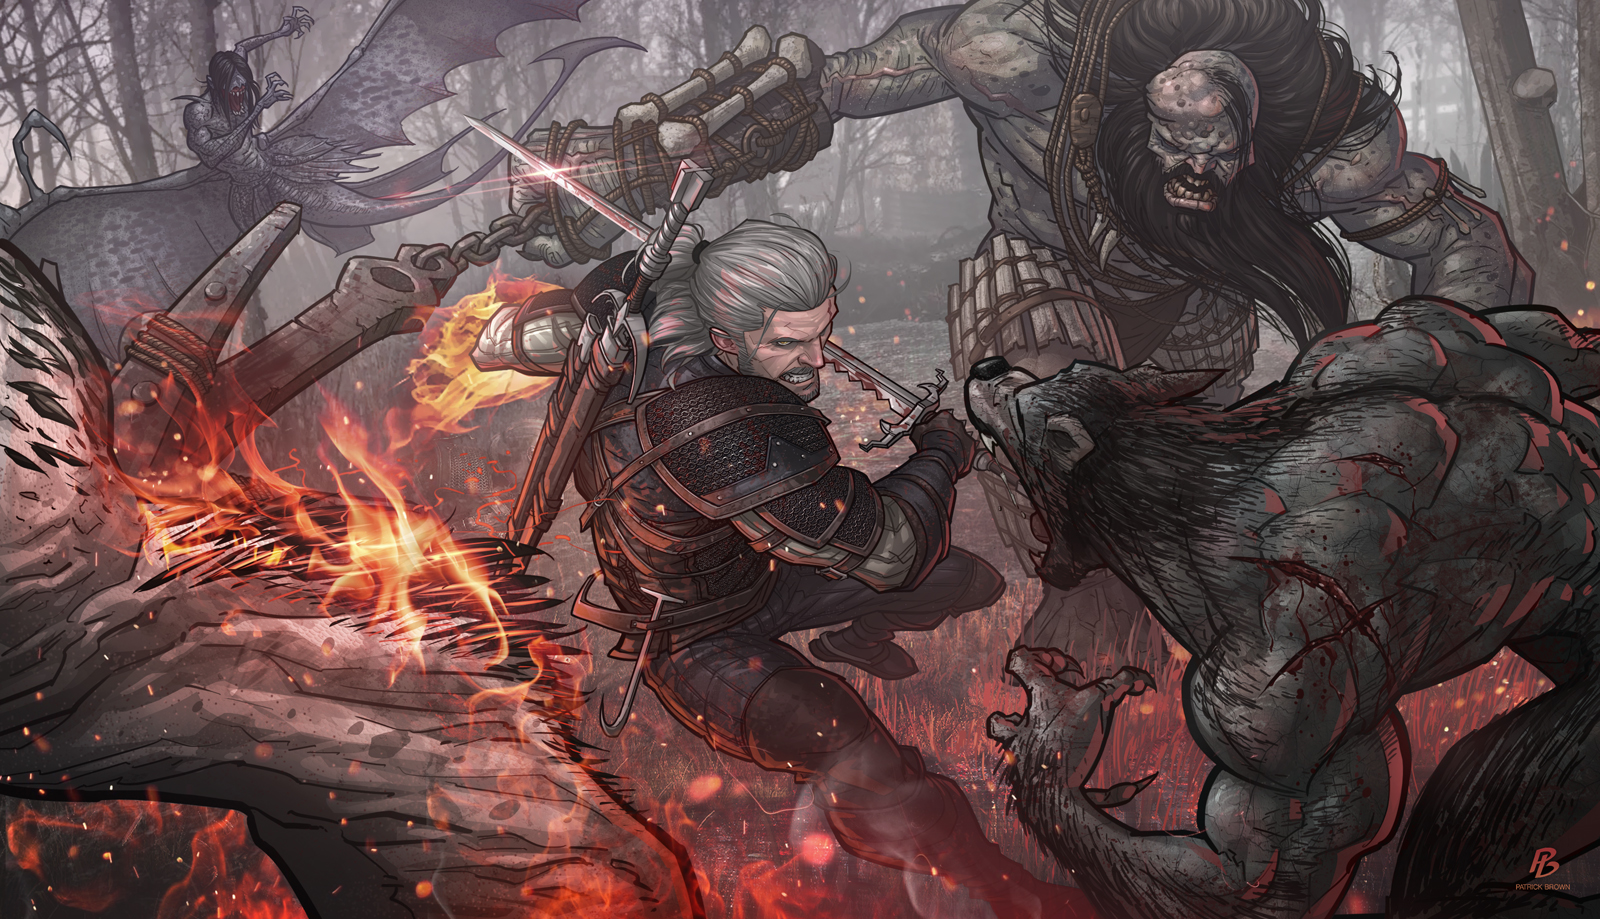 Witcher 3 Fan Art